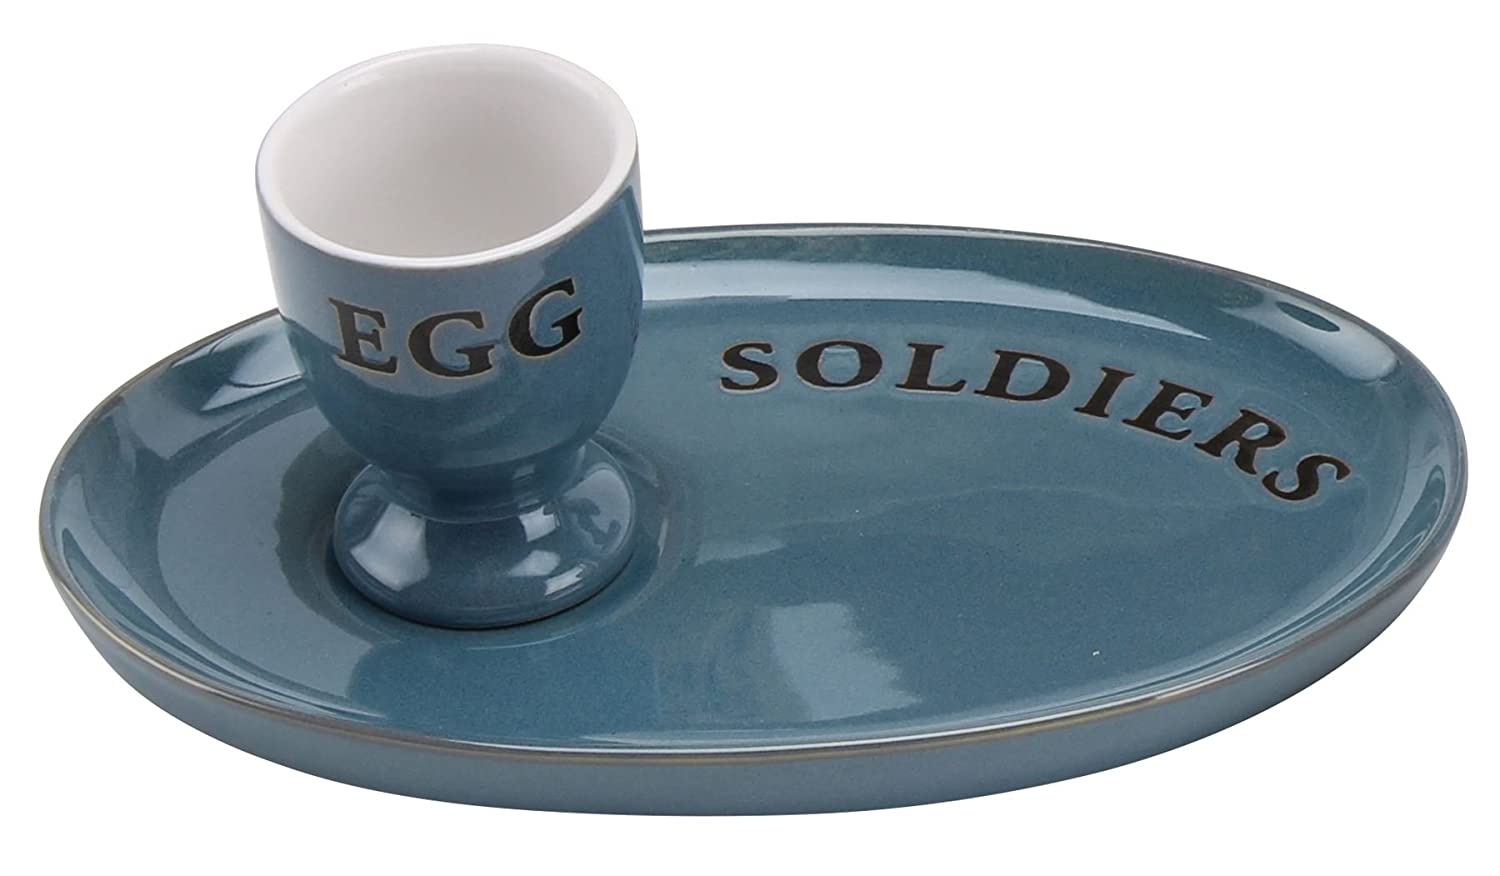 Country Kitchen Ceramic Egg And Soldiers Plate And Egg Cup Set ~ Blue Carousel Home